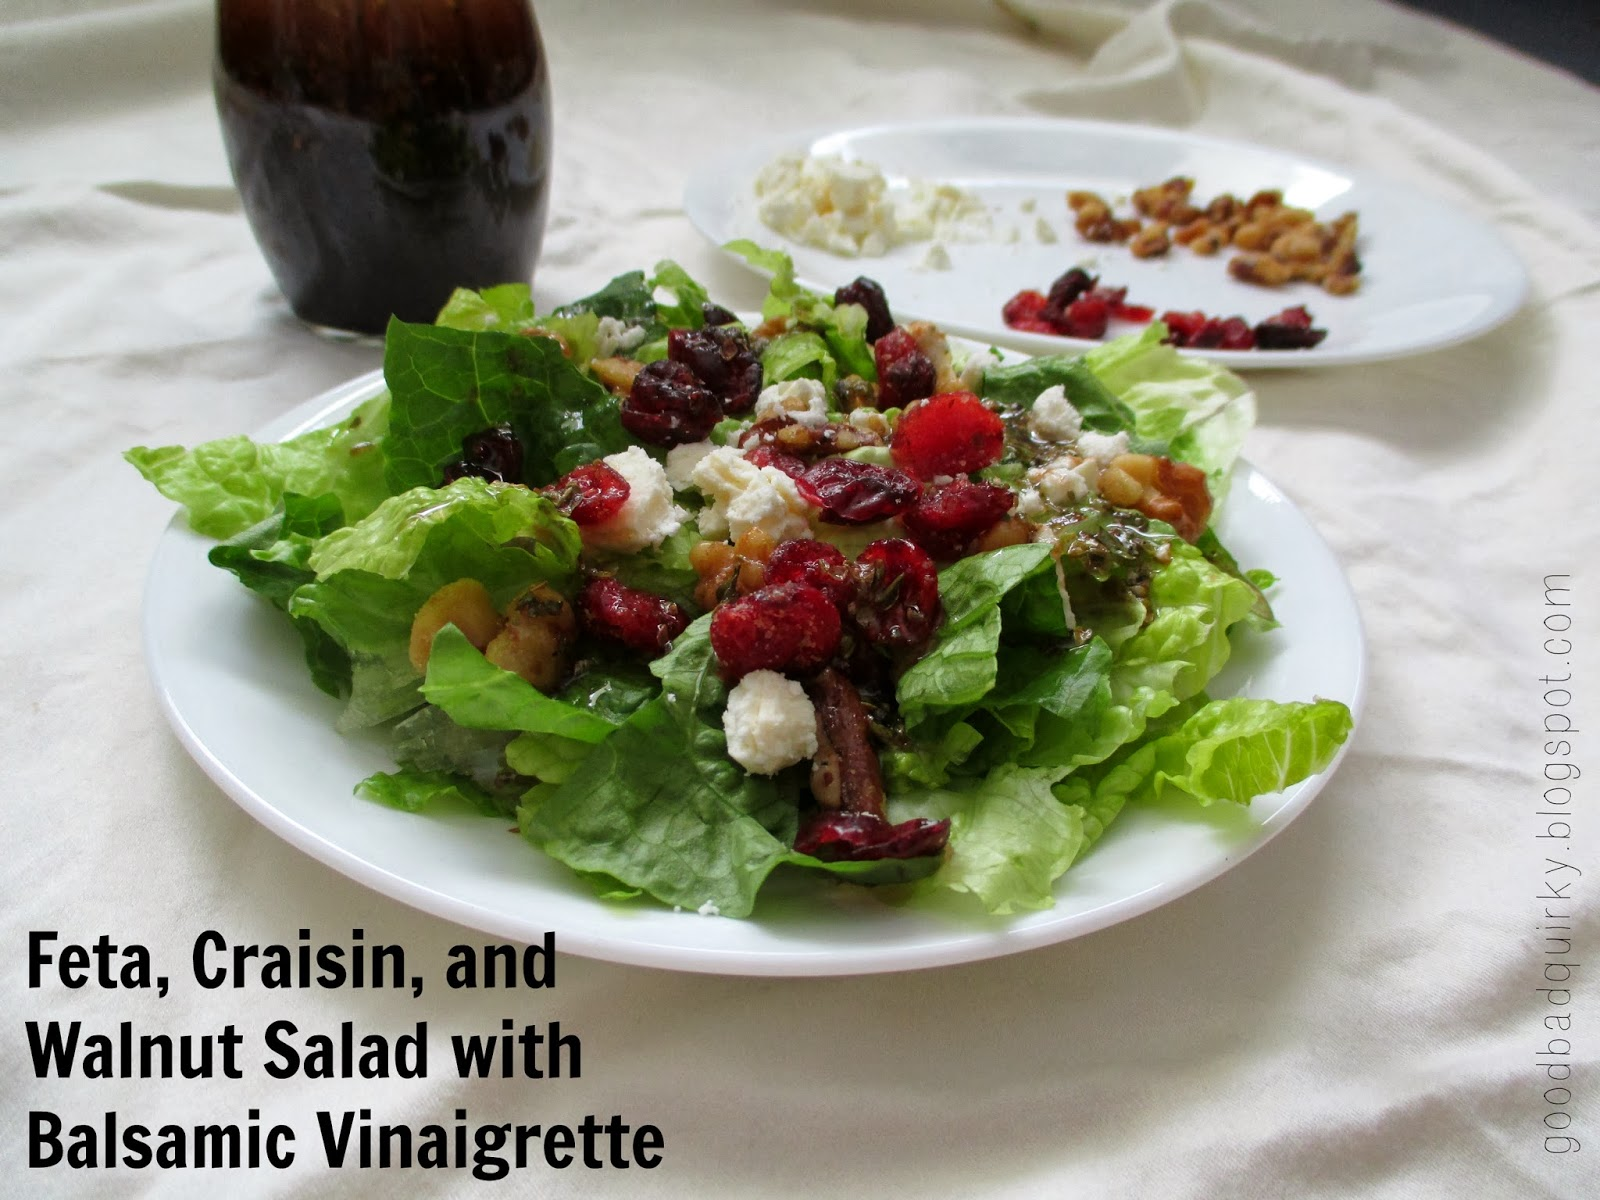 Feta, Craisin, and Walnut Salad with Balsamic Vinaigrette